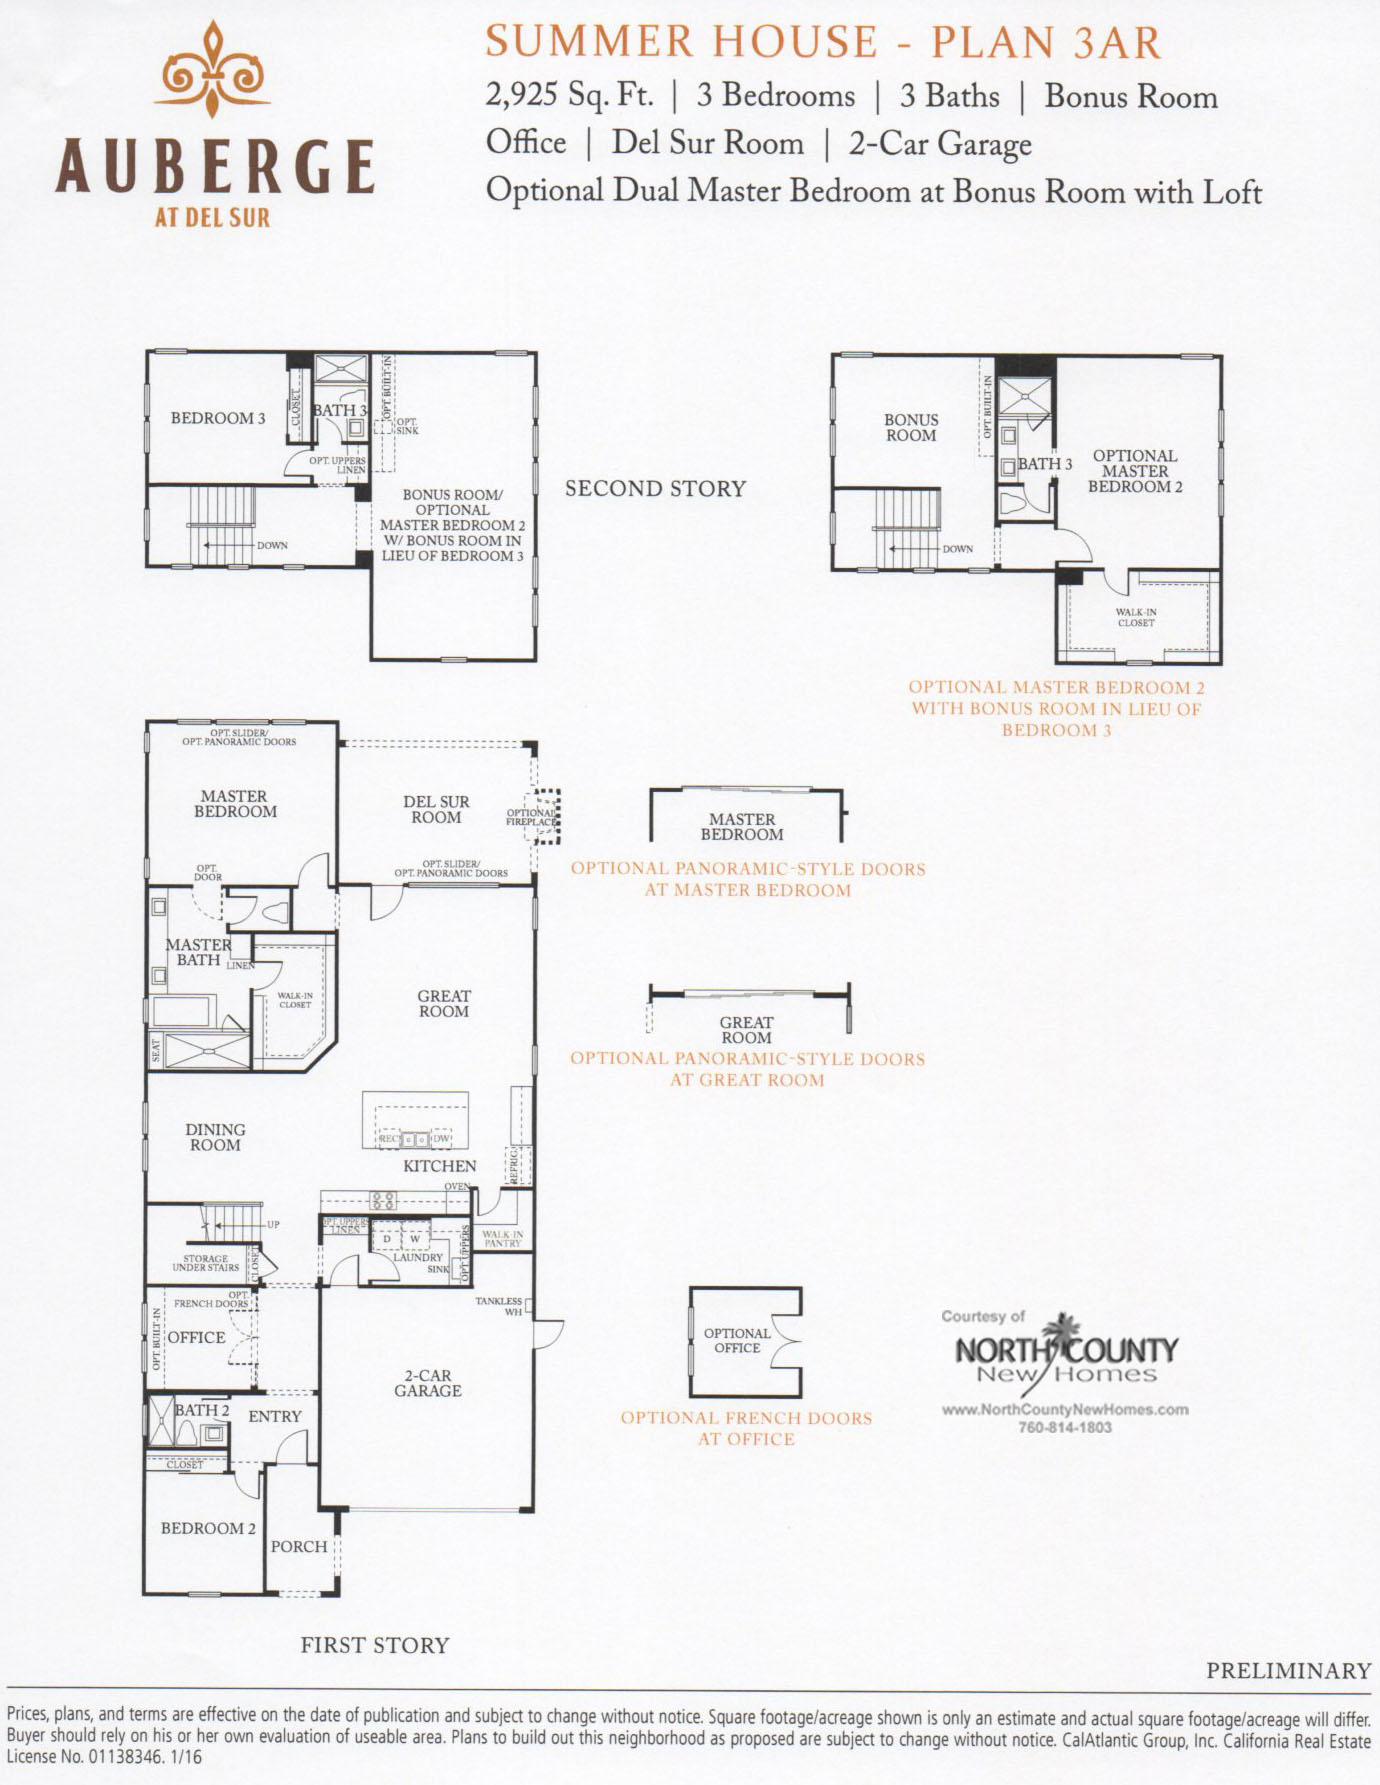 Auberge at del sur summer house floor plans north county for New home floor plans